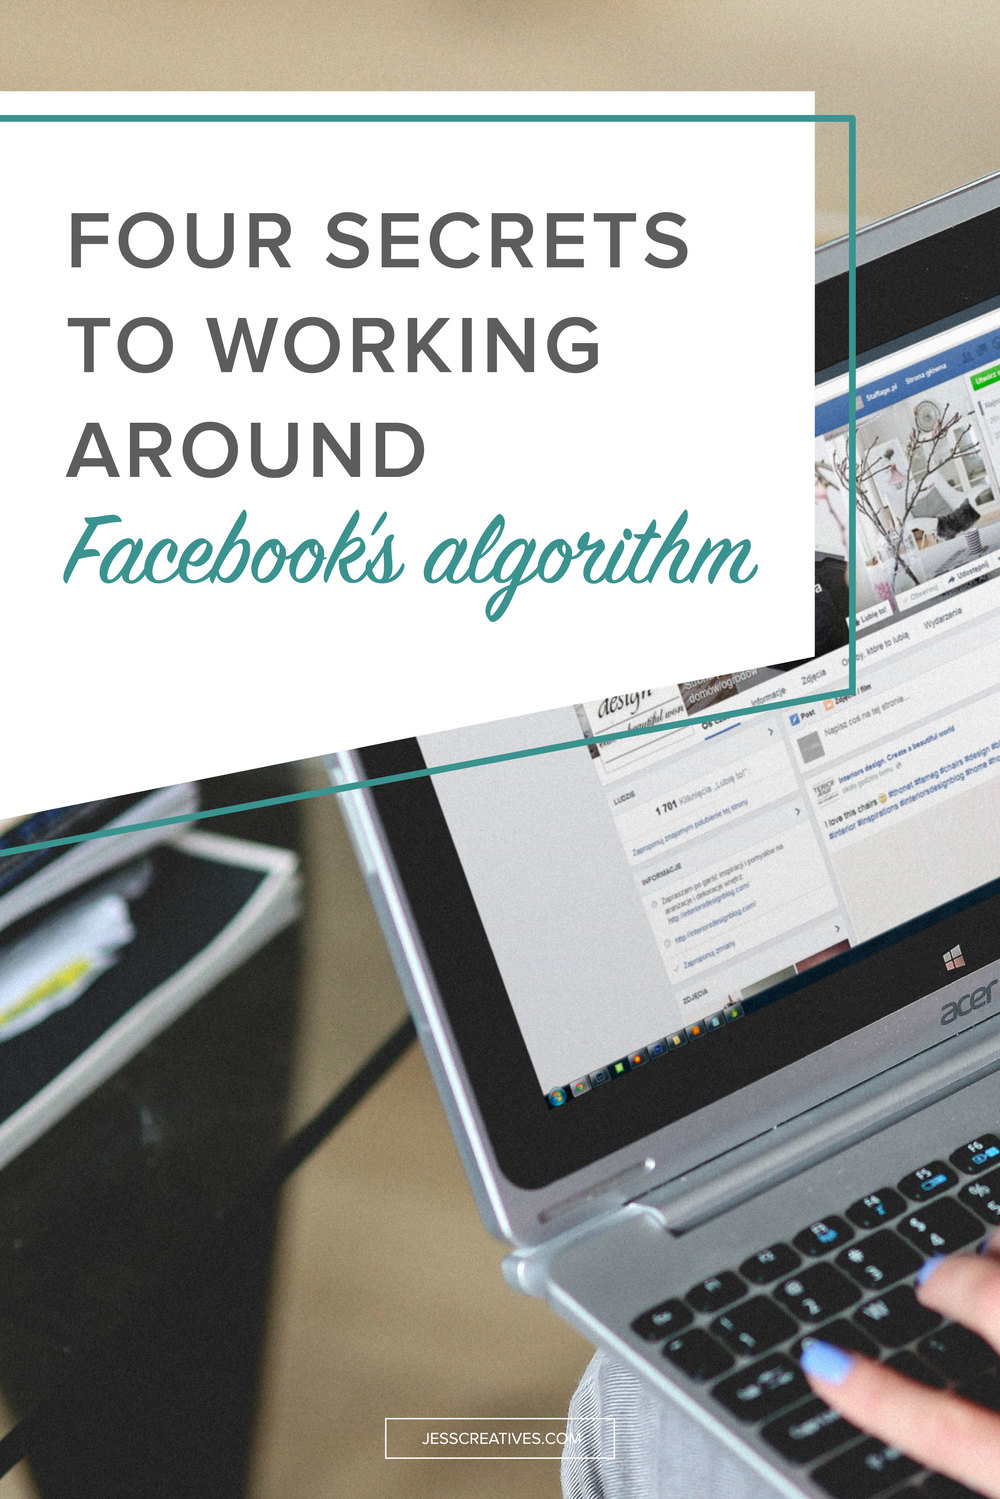 """No one sees my posts.  I don't get any reach.  I feel like I'm losing out on new clients because of Facebook.""  I think we can all agree that Facebook's algorithm has been frustrating for business pages."